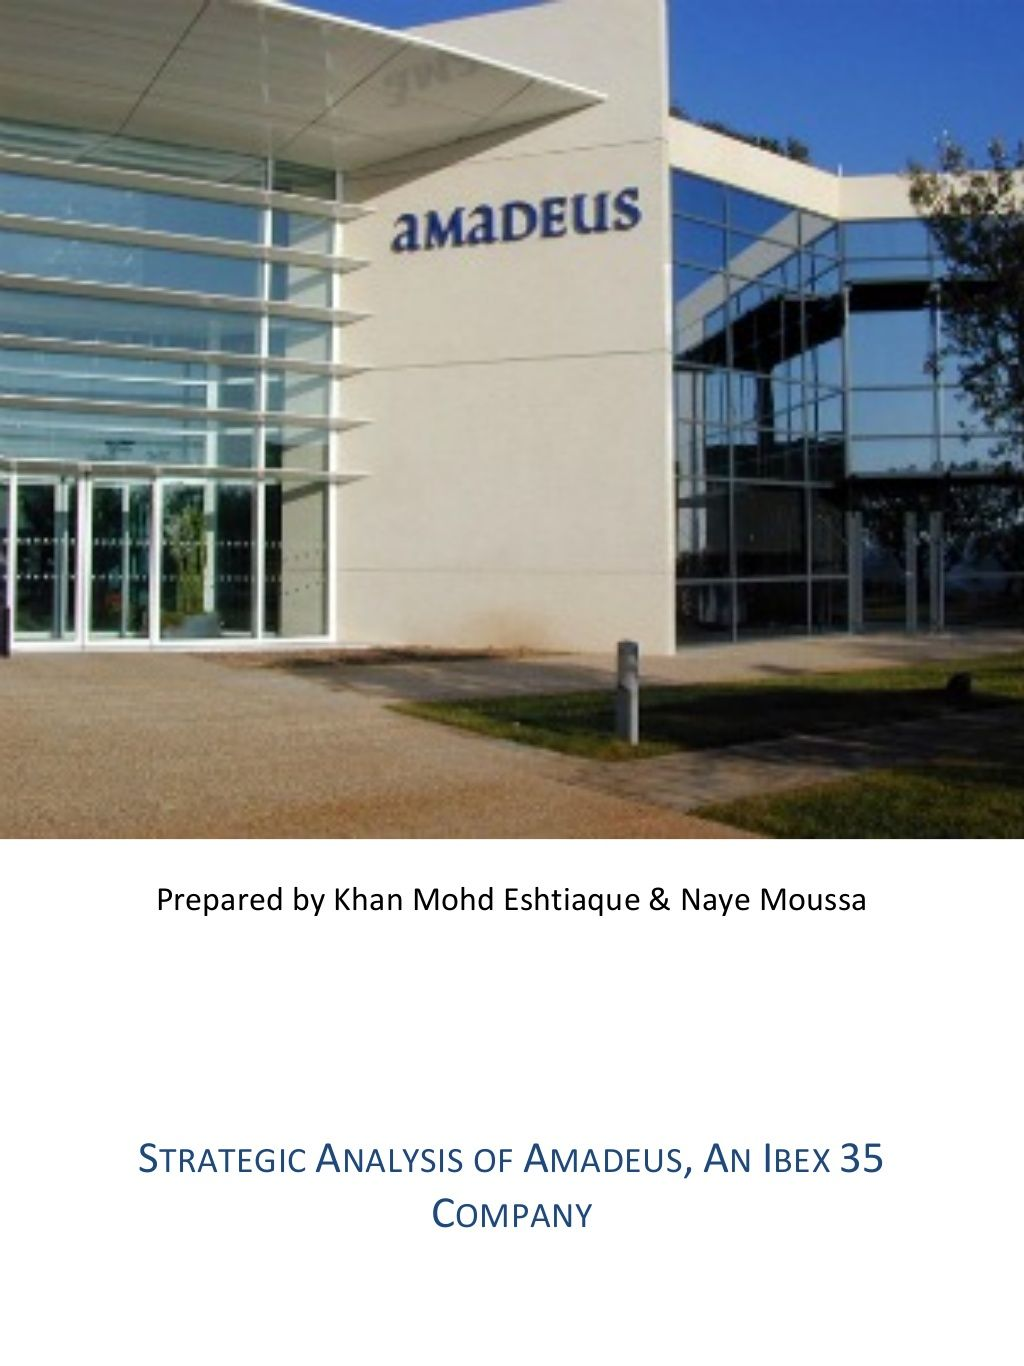 Strategic Analysis For Amadeus By Khan Mohd Eshtiaque Via